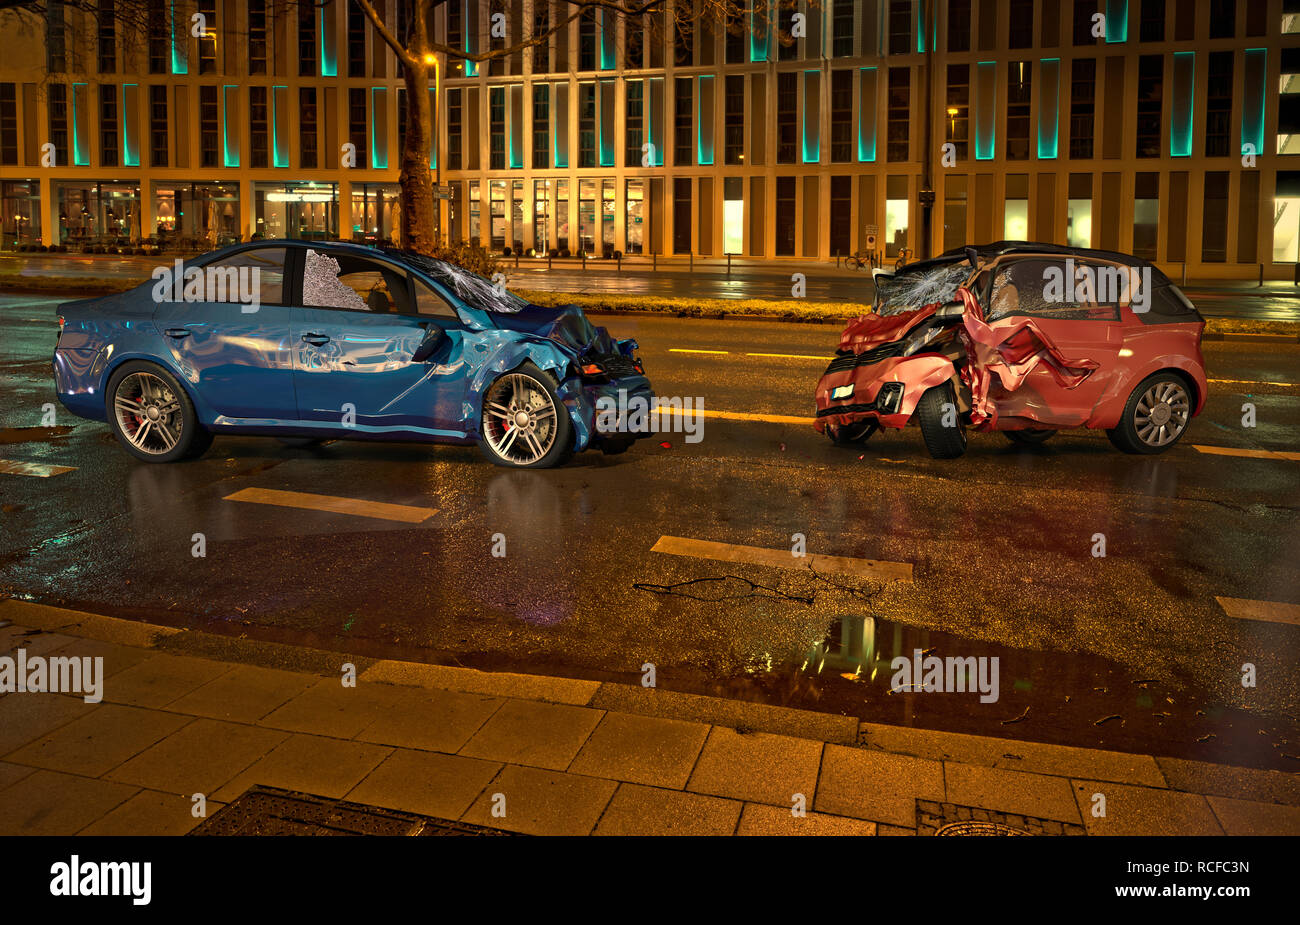 Two cars accident. Crashed cars on the road on city location at night time. A blue sedan against a red city car. Frontal collision with big damages. - Stock Image